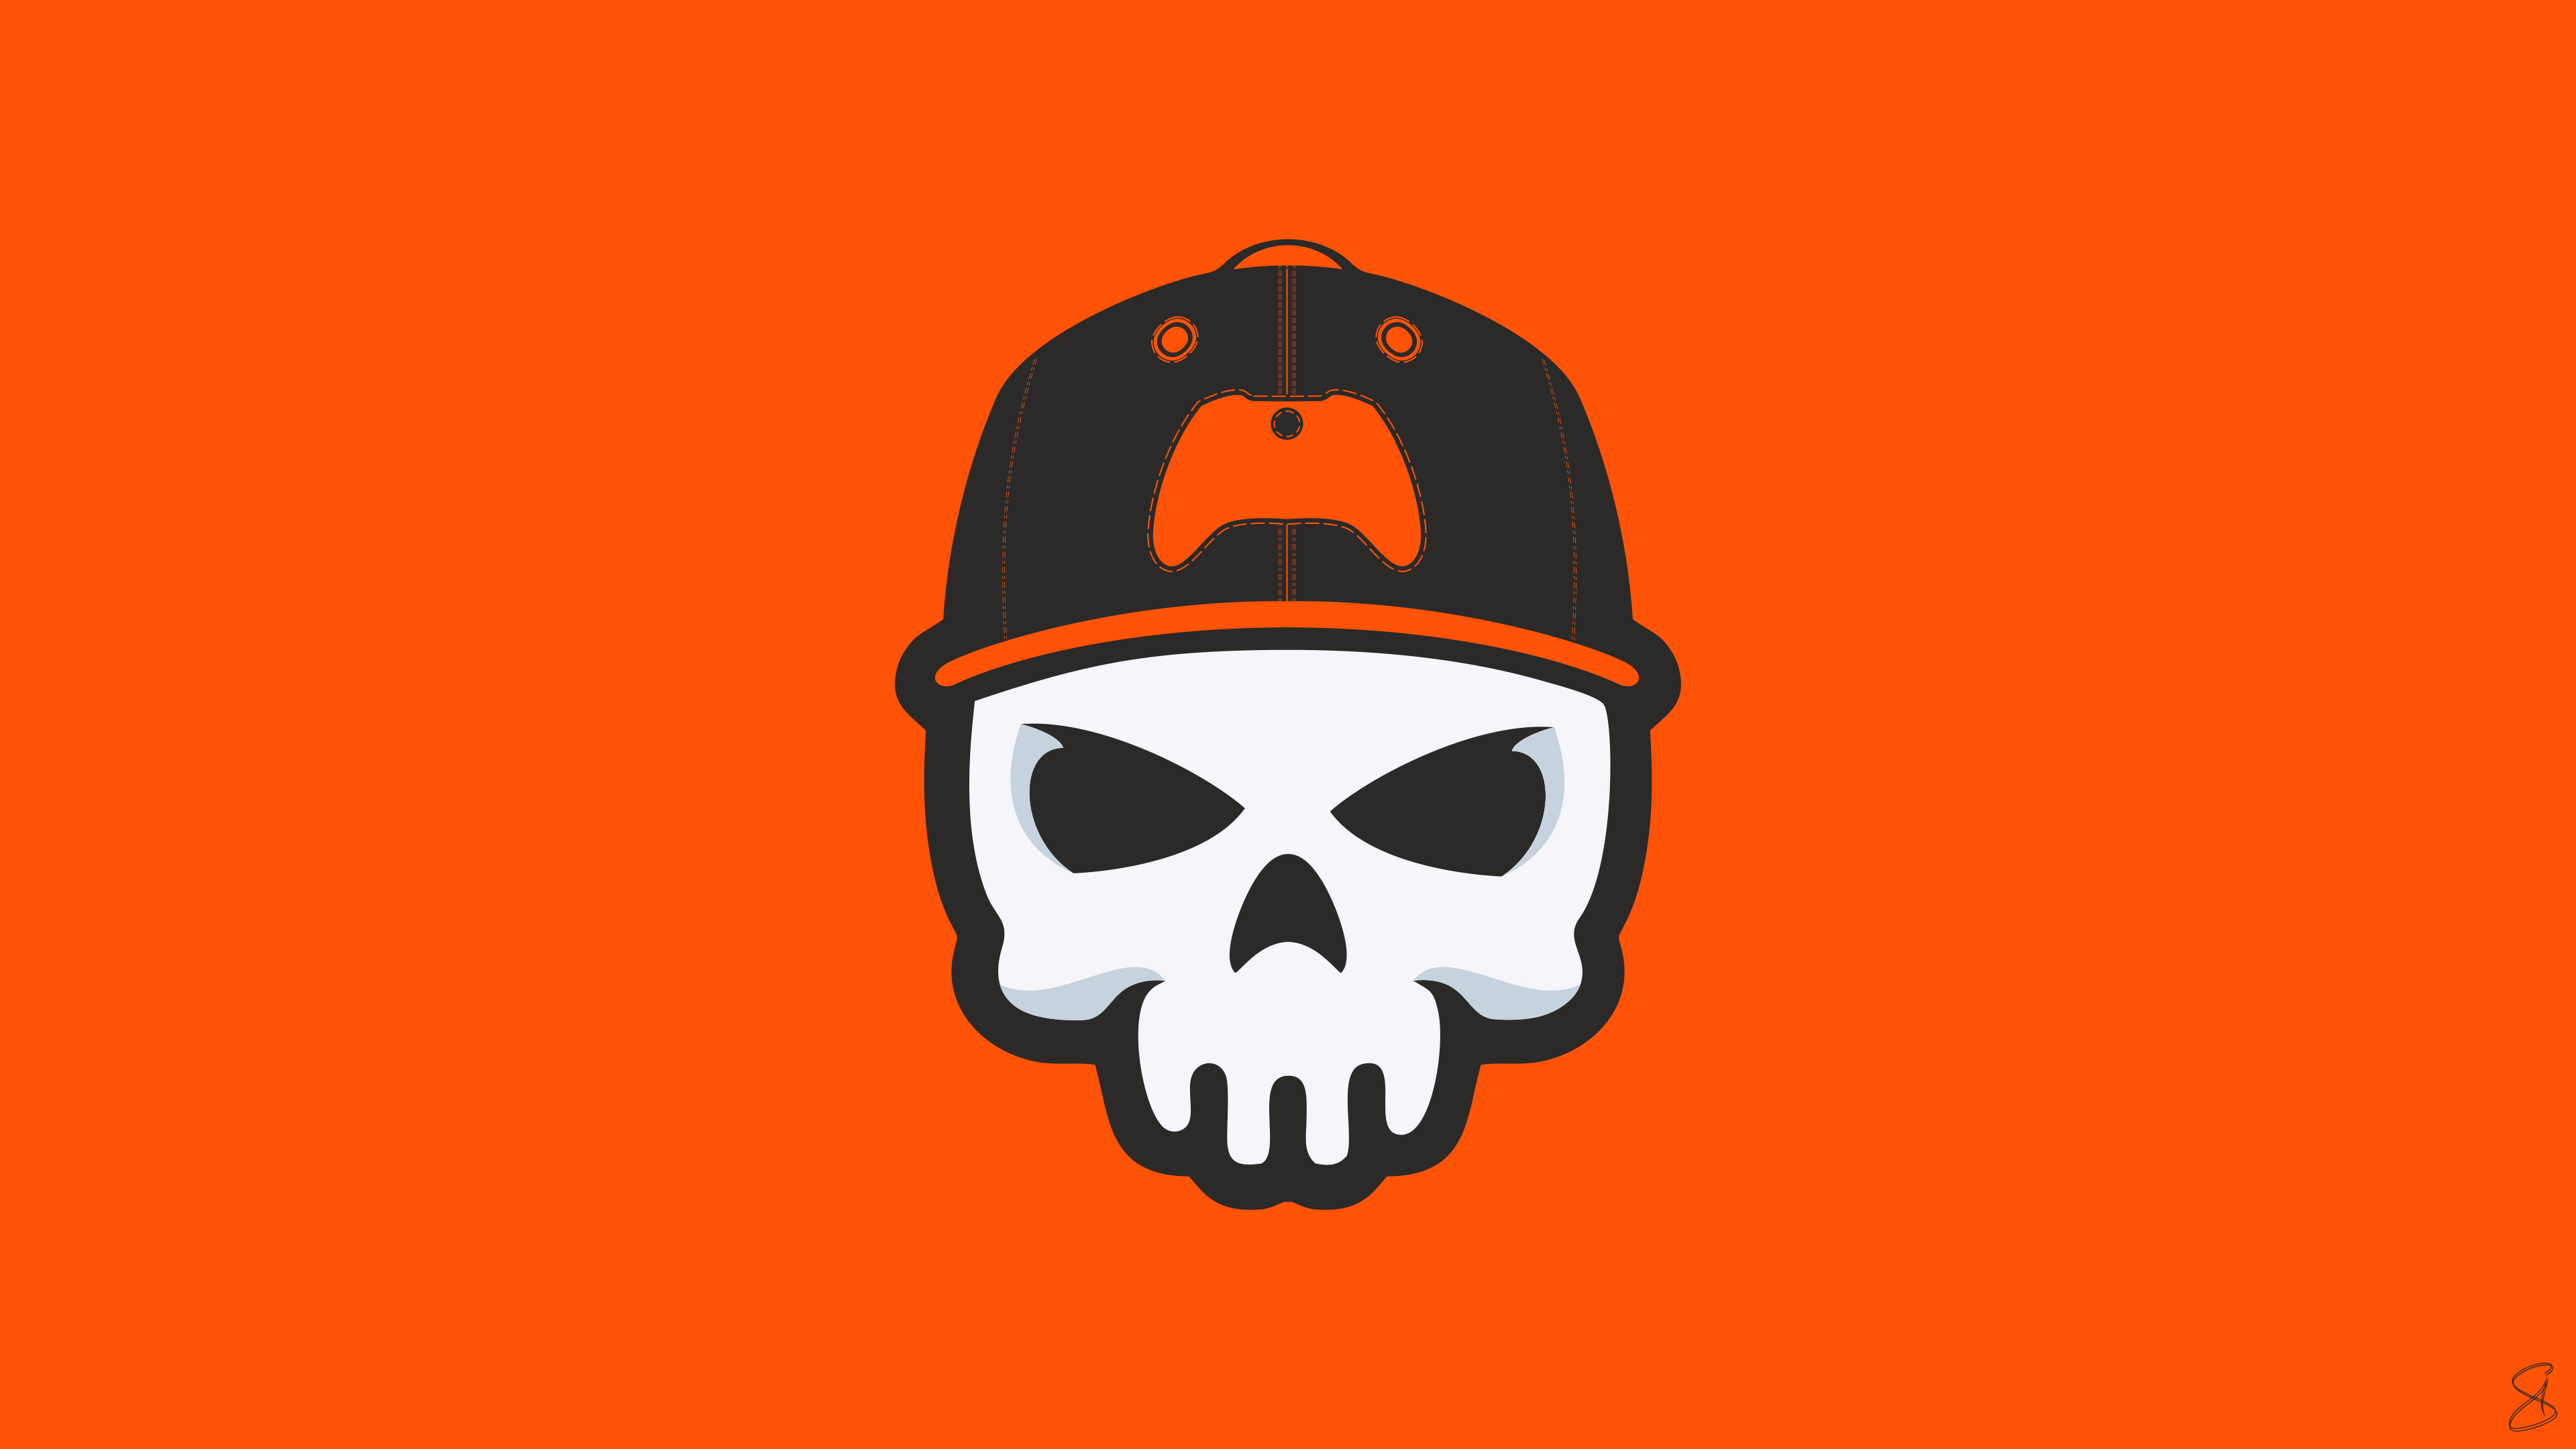 gamer skull minimal 1565054370 - Gamer Skull Minimal - skull wallpapers, minimalist wallpapers, minimalism wallpapers, hd-wallpapers, games wallpapers, 4k-wallpapers